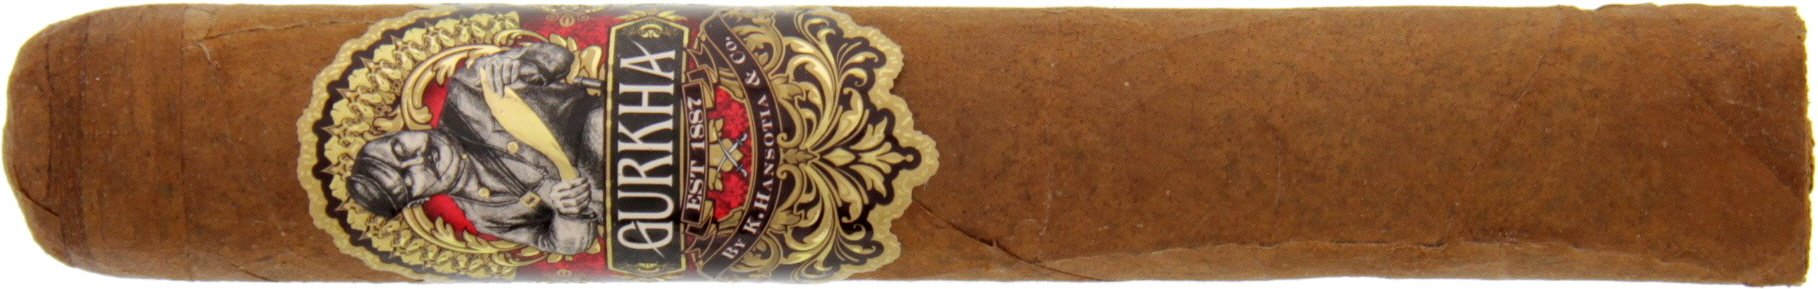 Gurkha 125th Anniversary Robusto